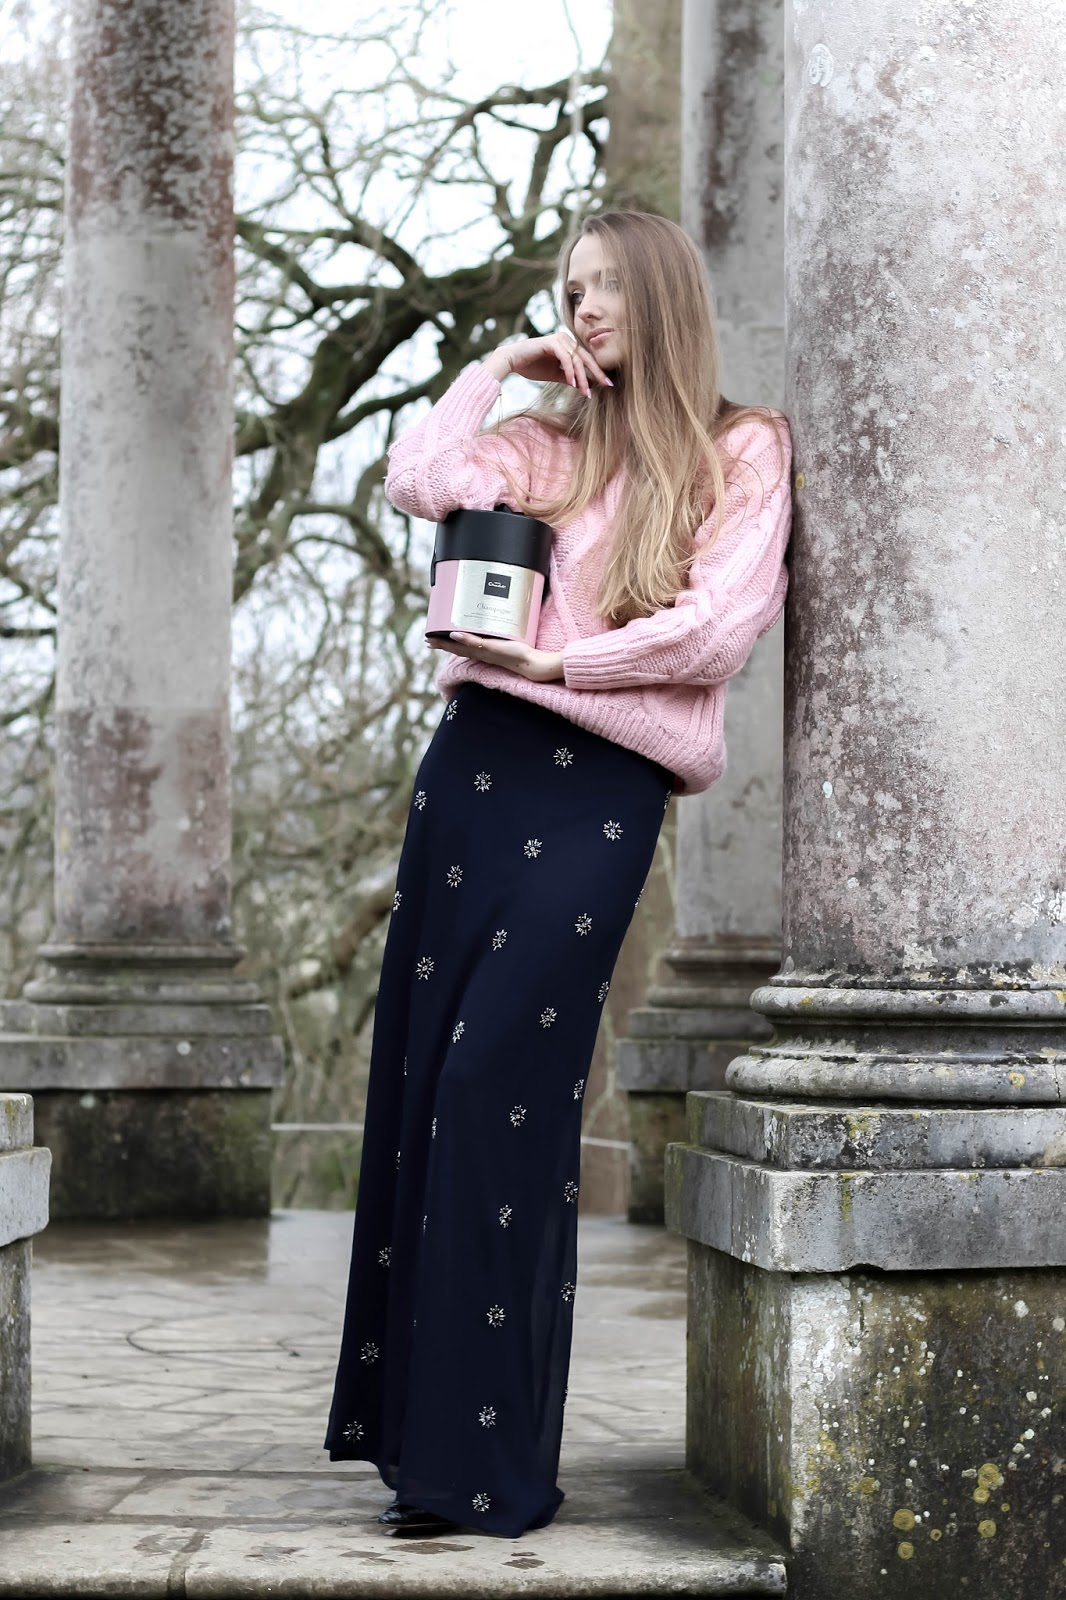 Styling embellished maxi skirt for cold weather